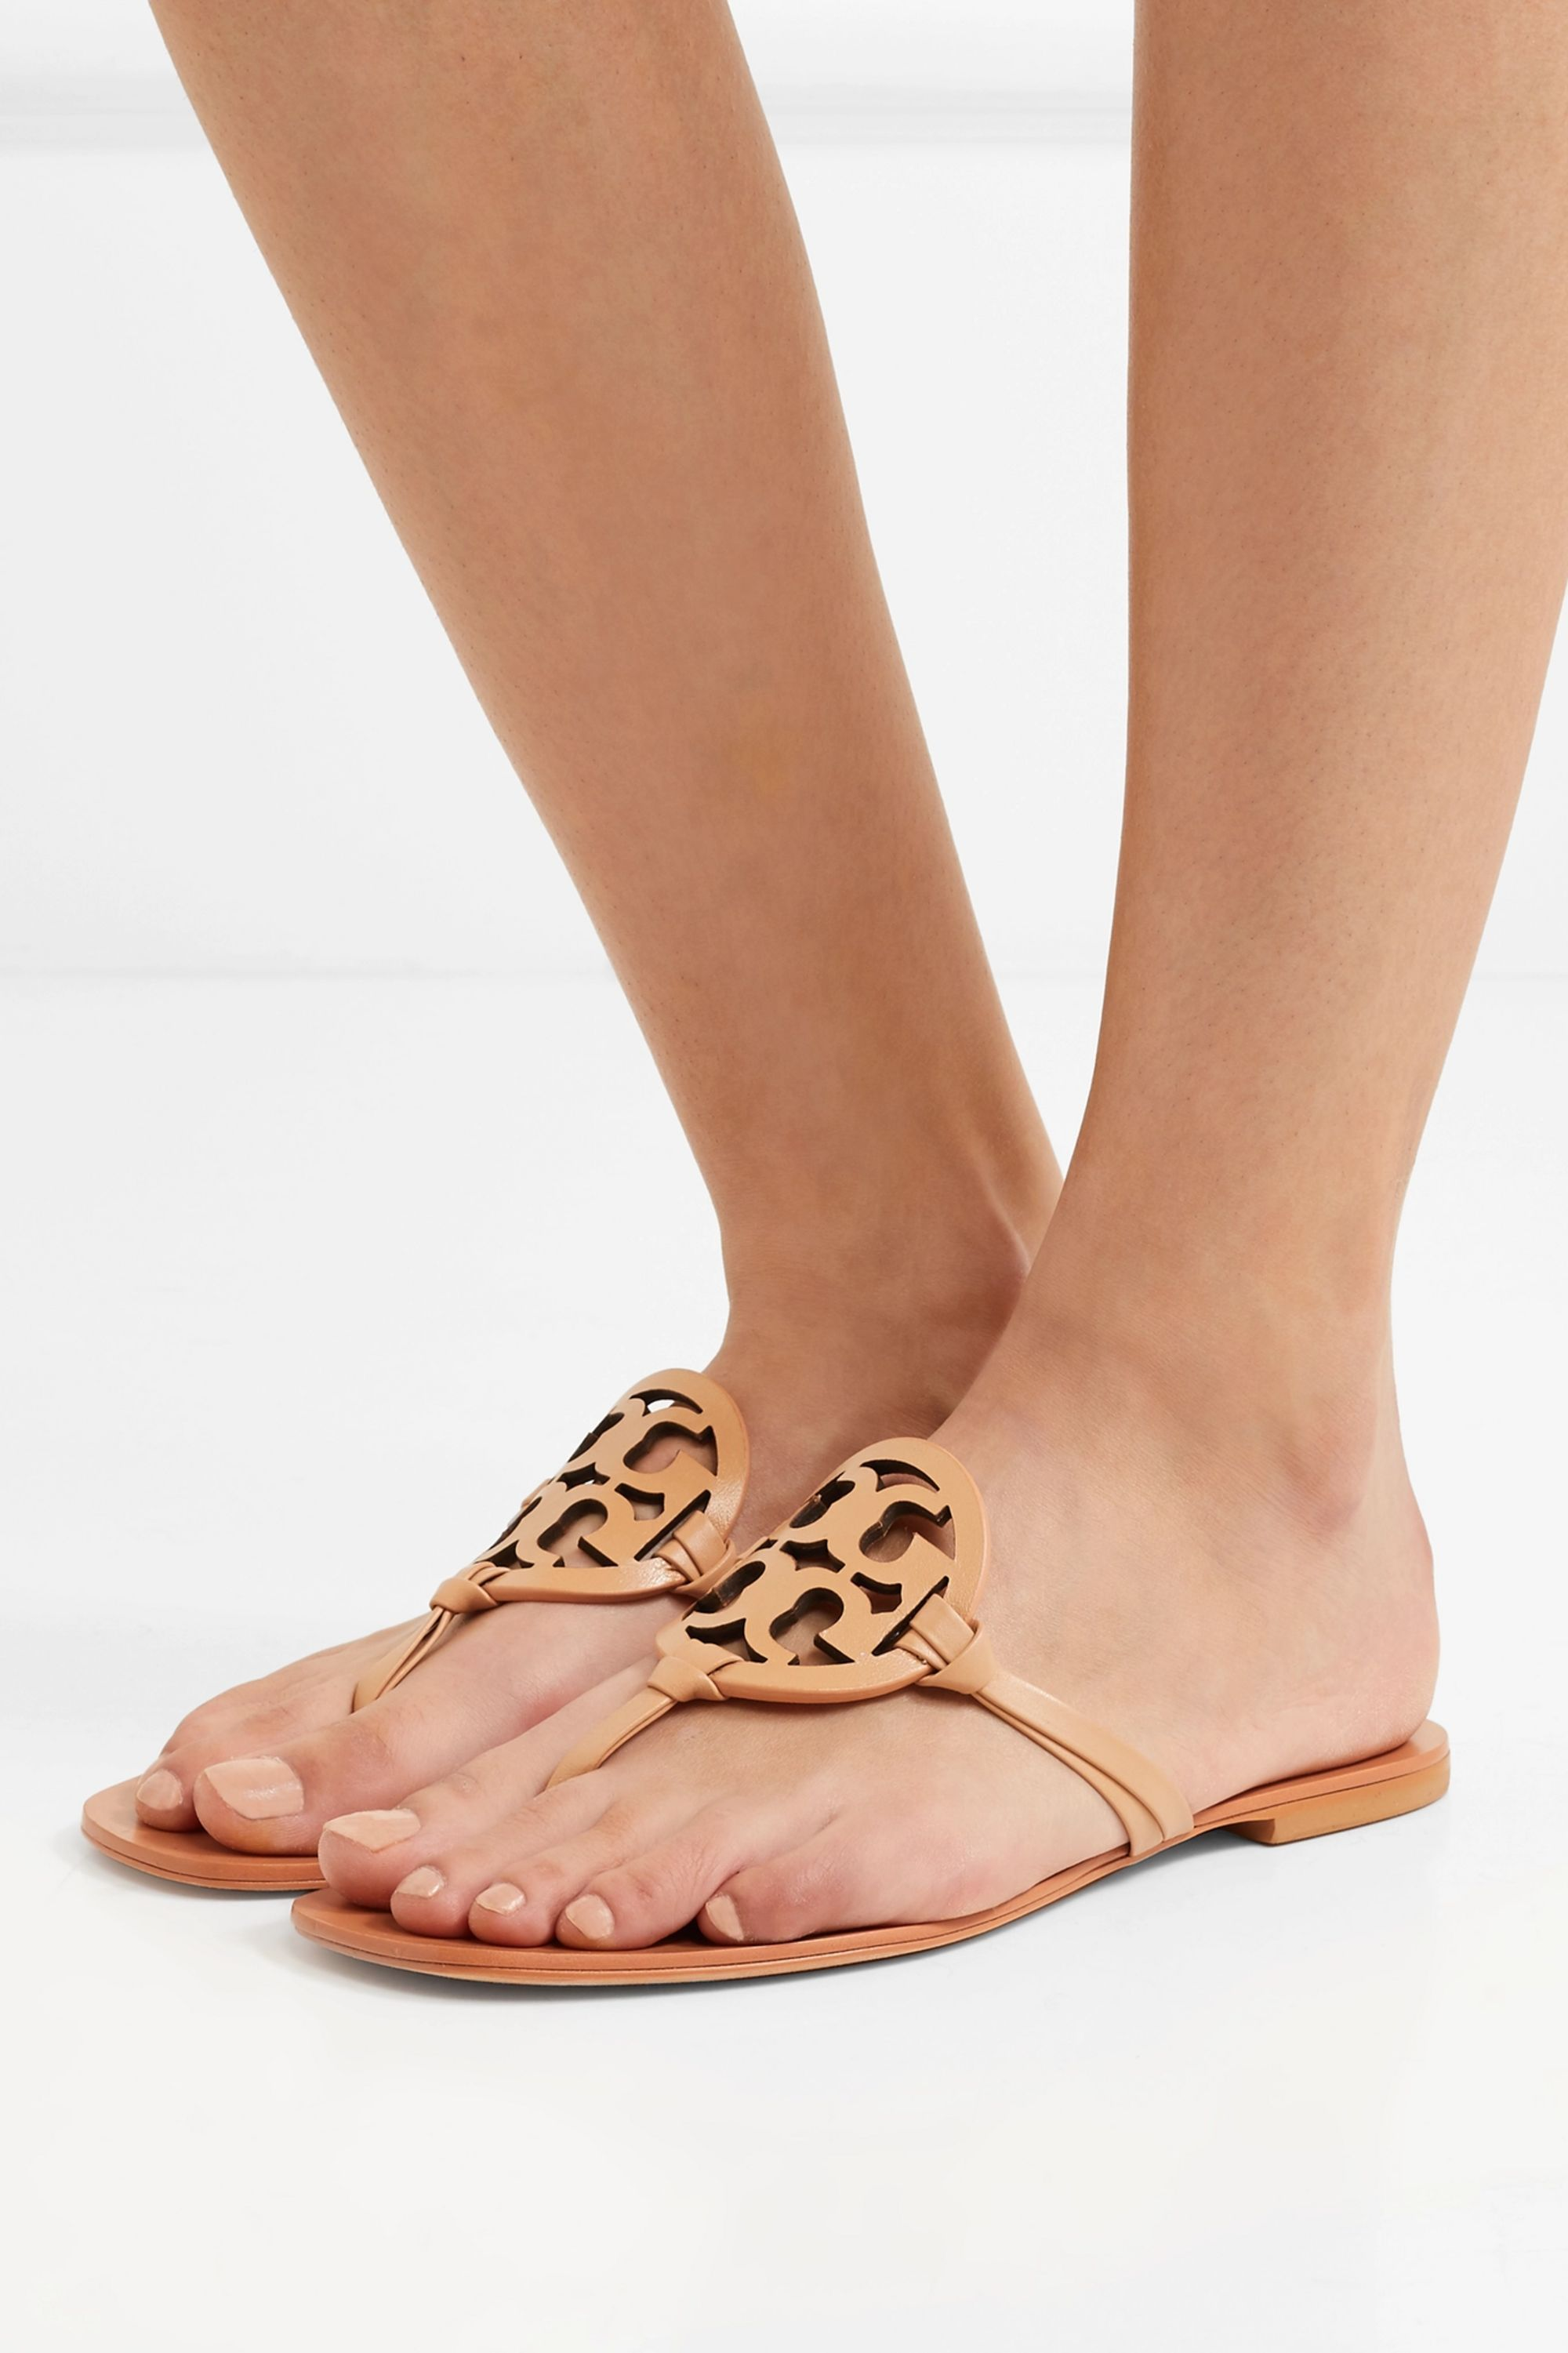 Tan Miller logo-embellished leather sandals | Tory Burch | NET-A-PORTER